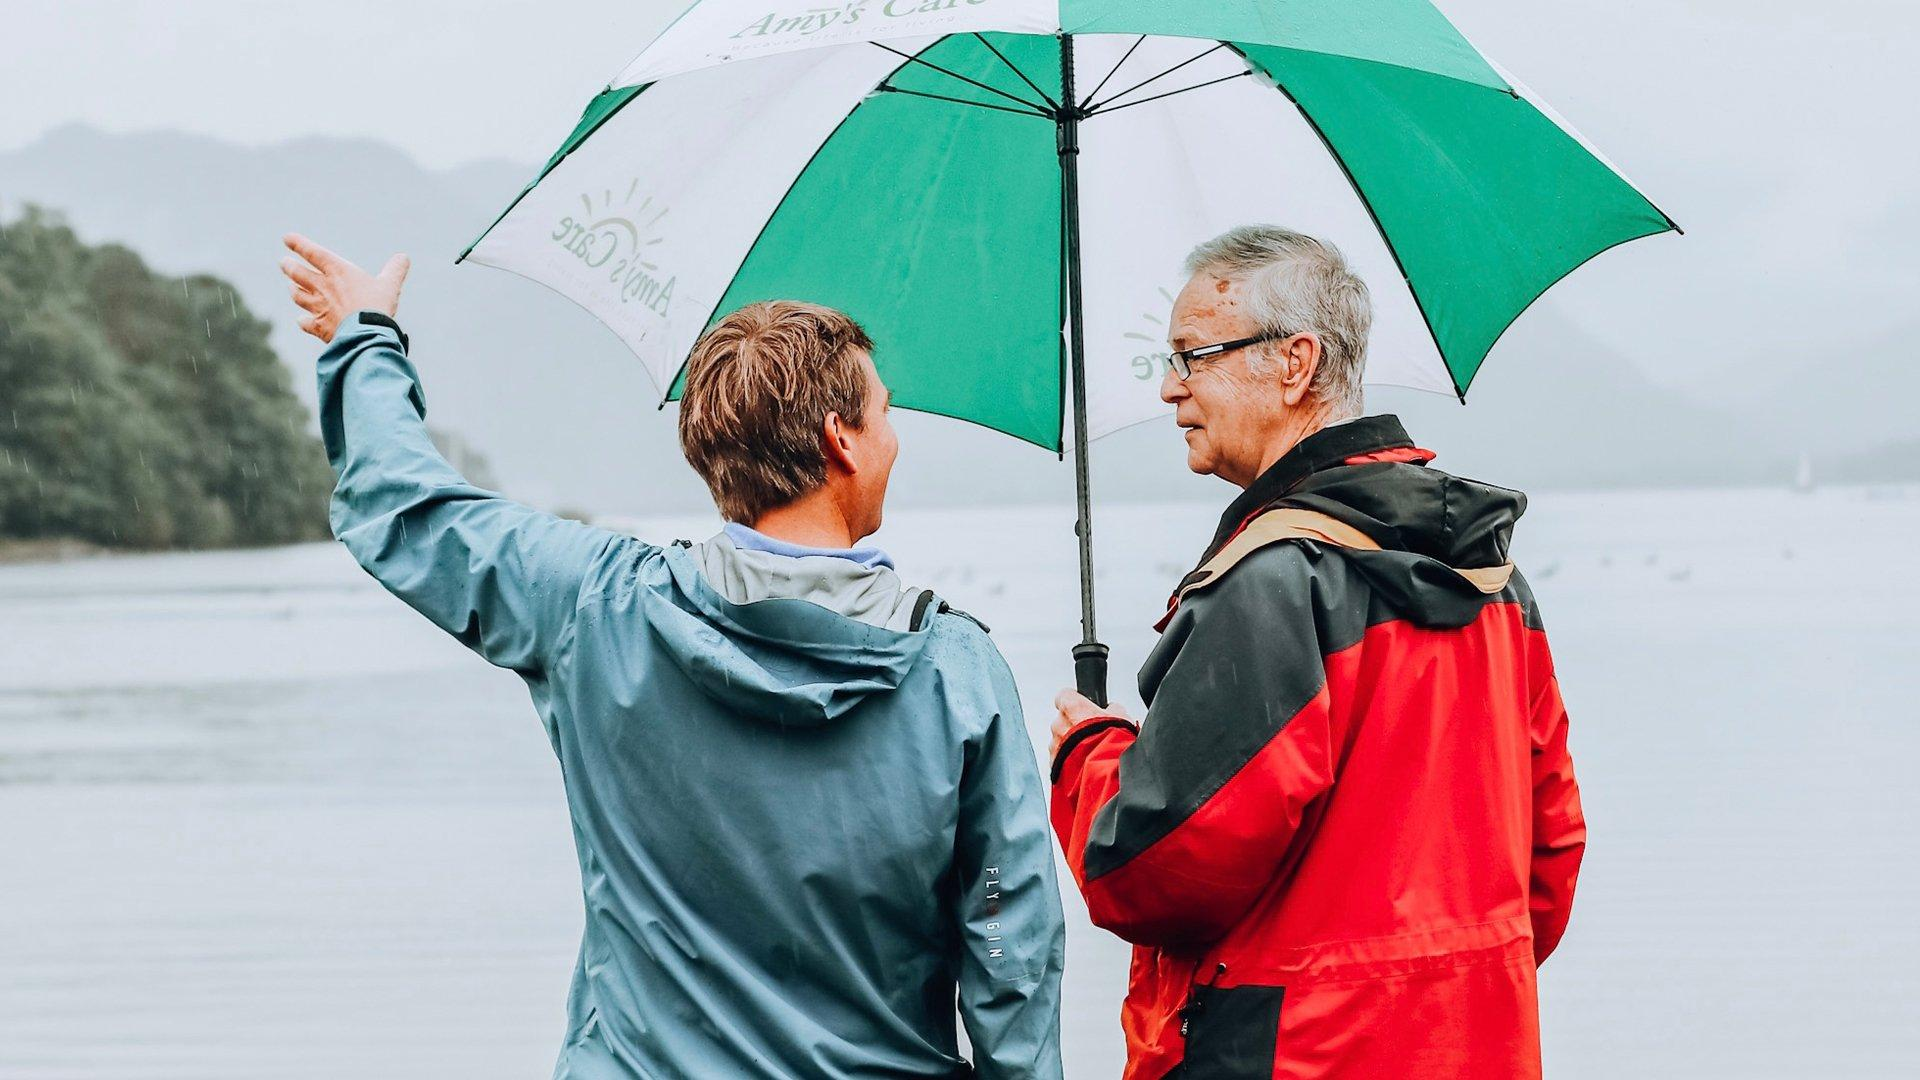 Elderly man and middle aged man enjoying an outdoor adventure in the uk